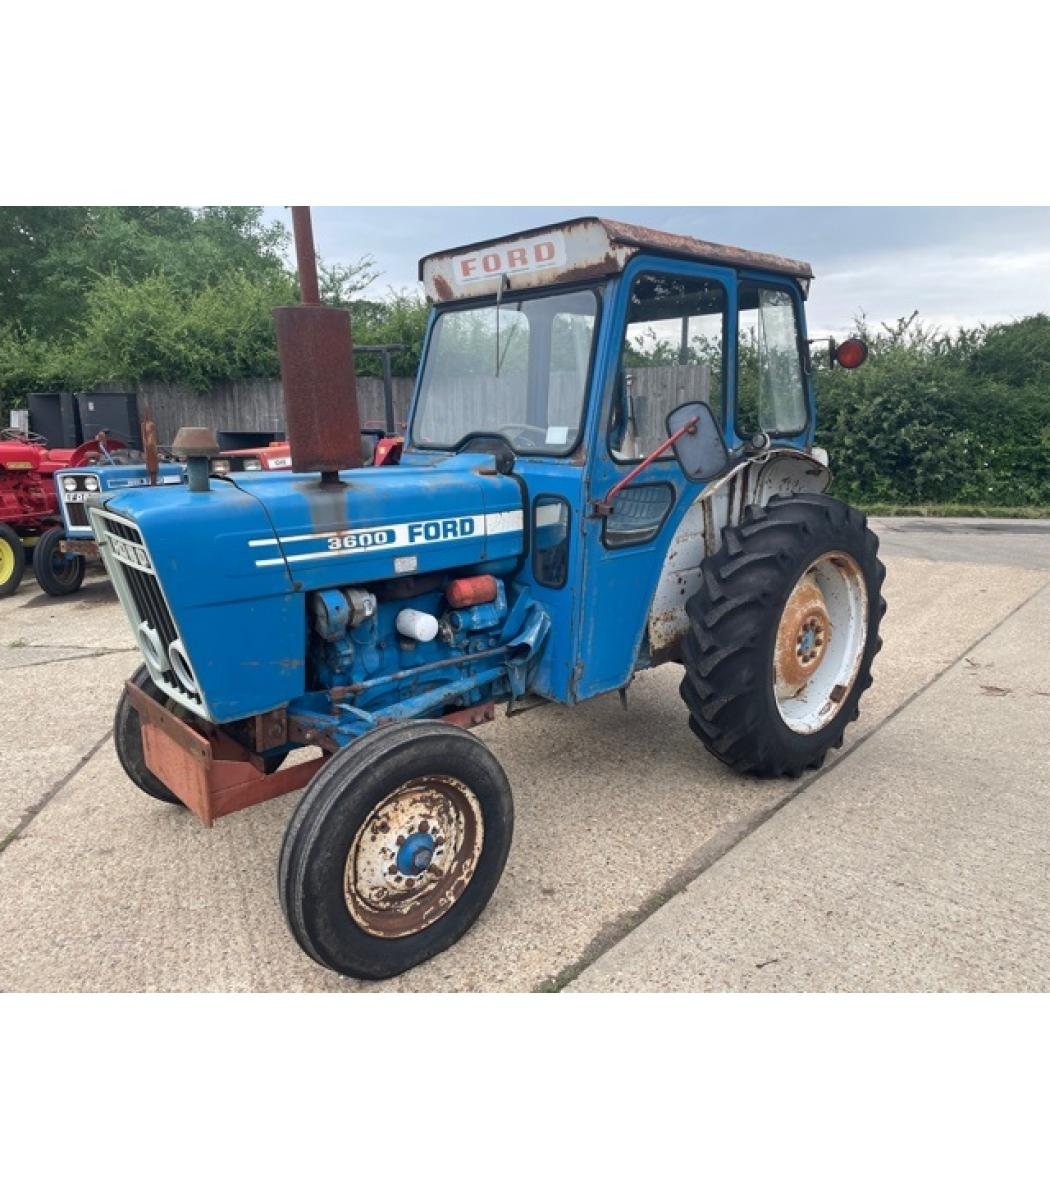 Ford 3600 Tractor Data : Ford